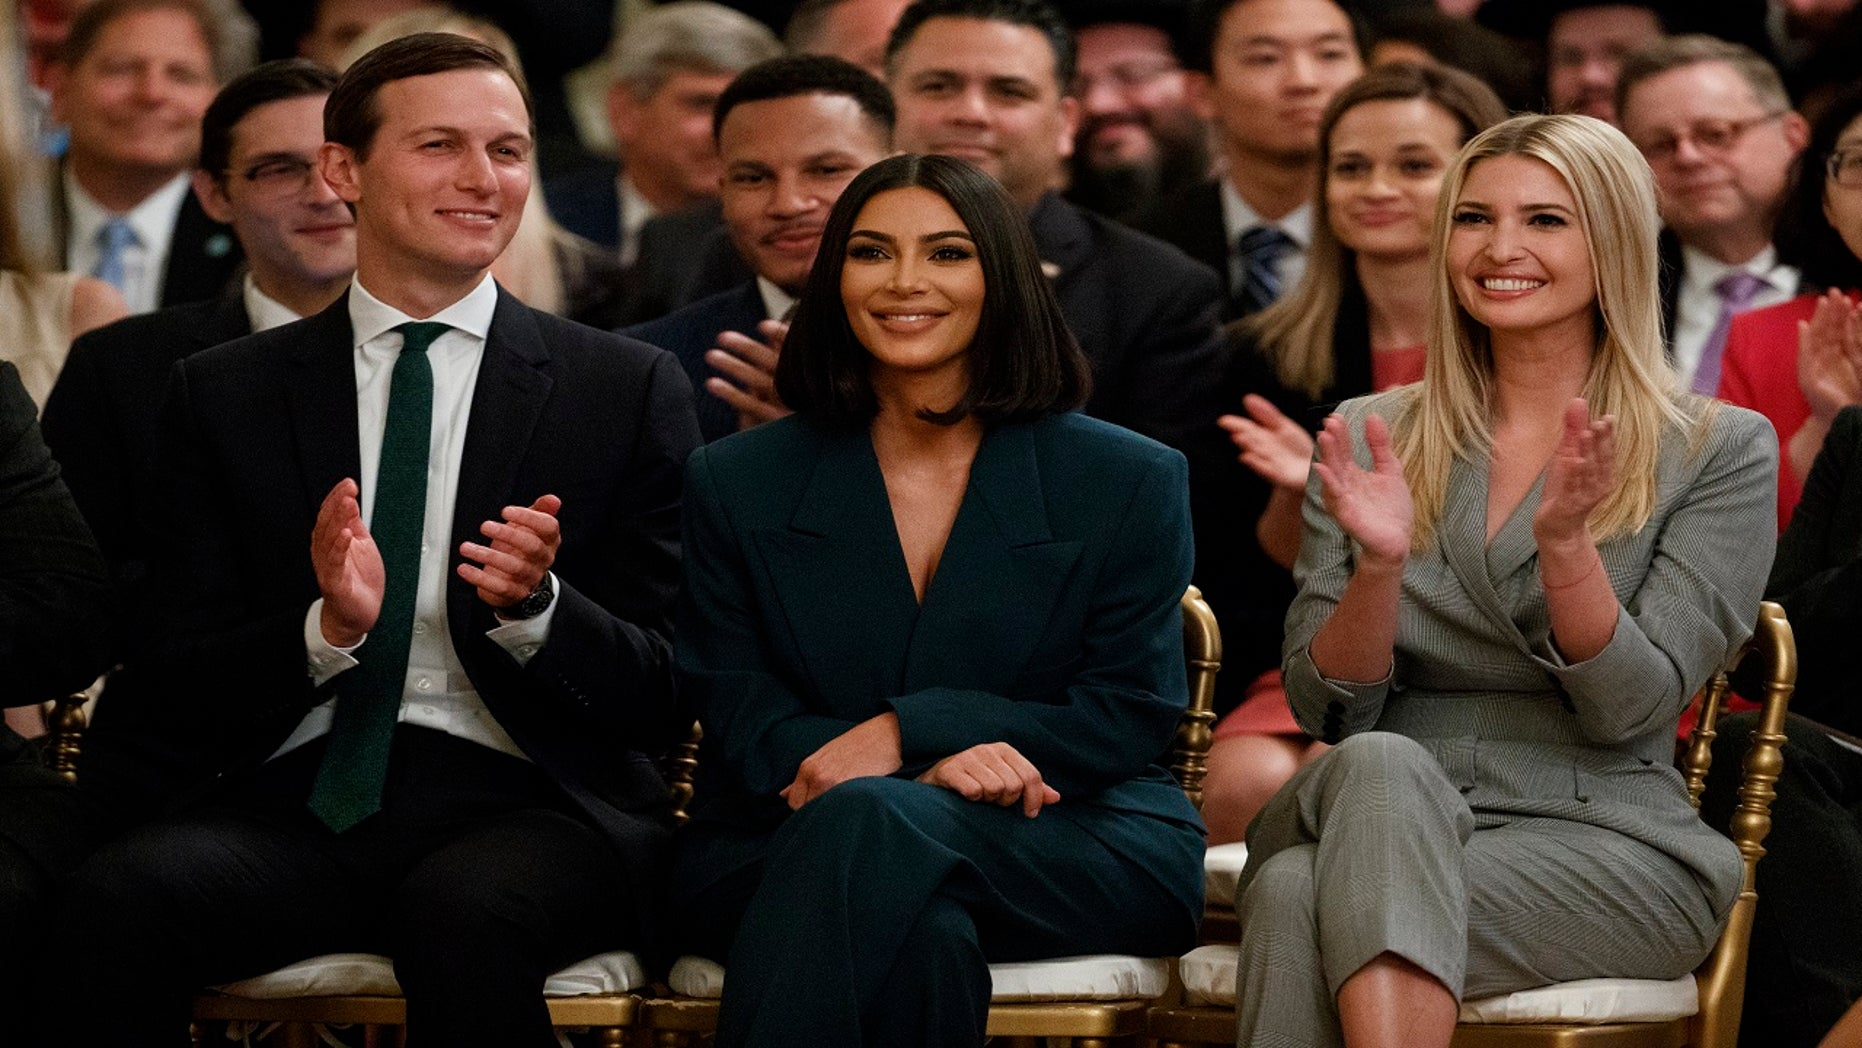 White House senior adviser Jared Kushner, left, and Ivanka Trump applaud as Kim Kardashian West, who is among the celebrities who have advocated for criminal justice reform in Washington.